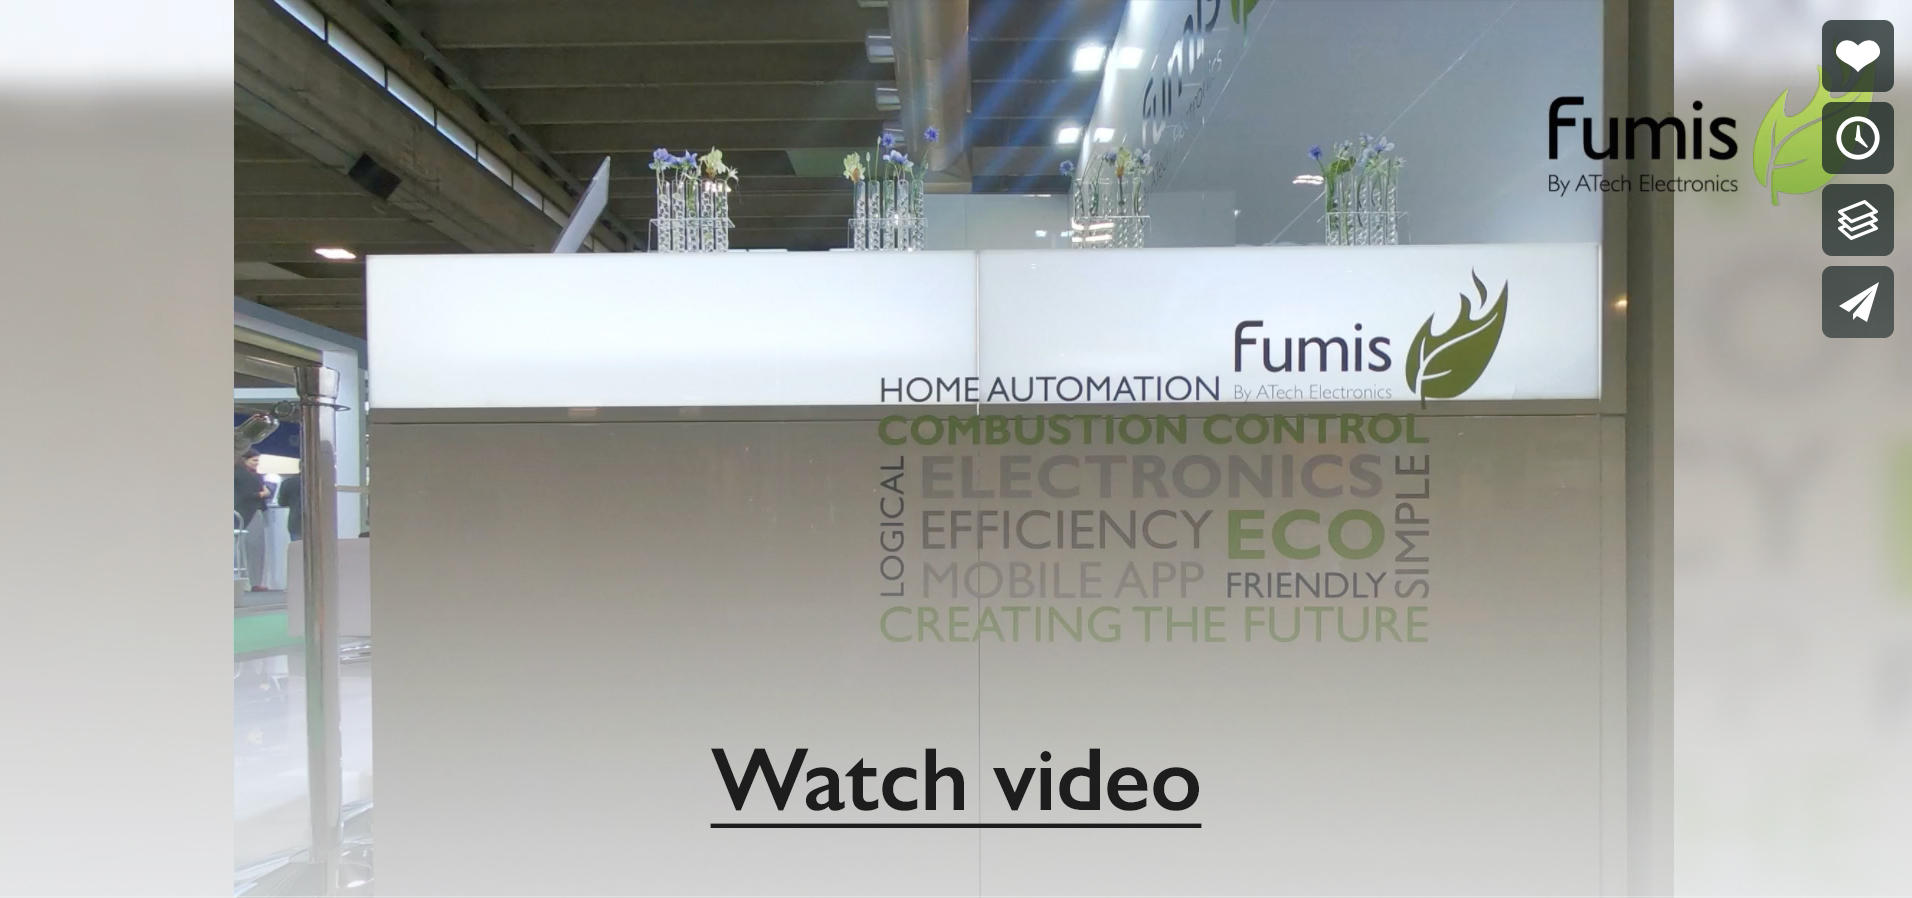 Symbolic image for Fumis PF2020 video